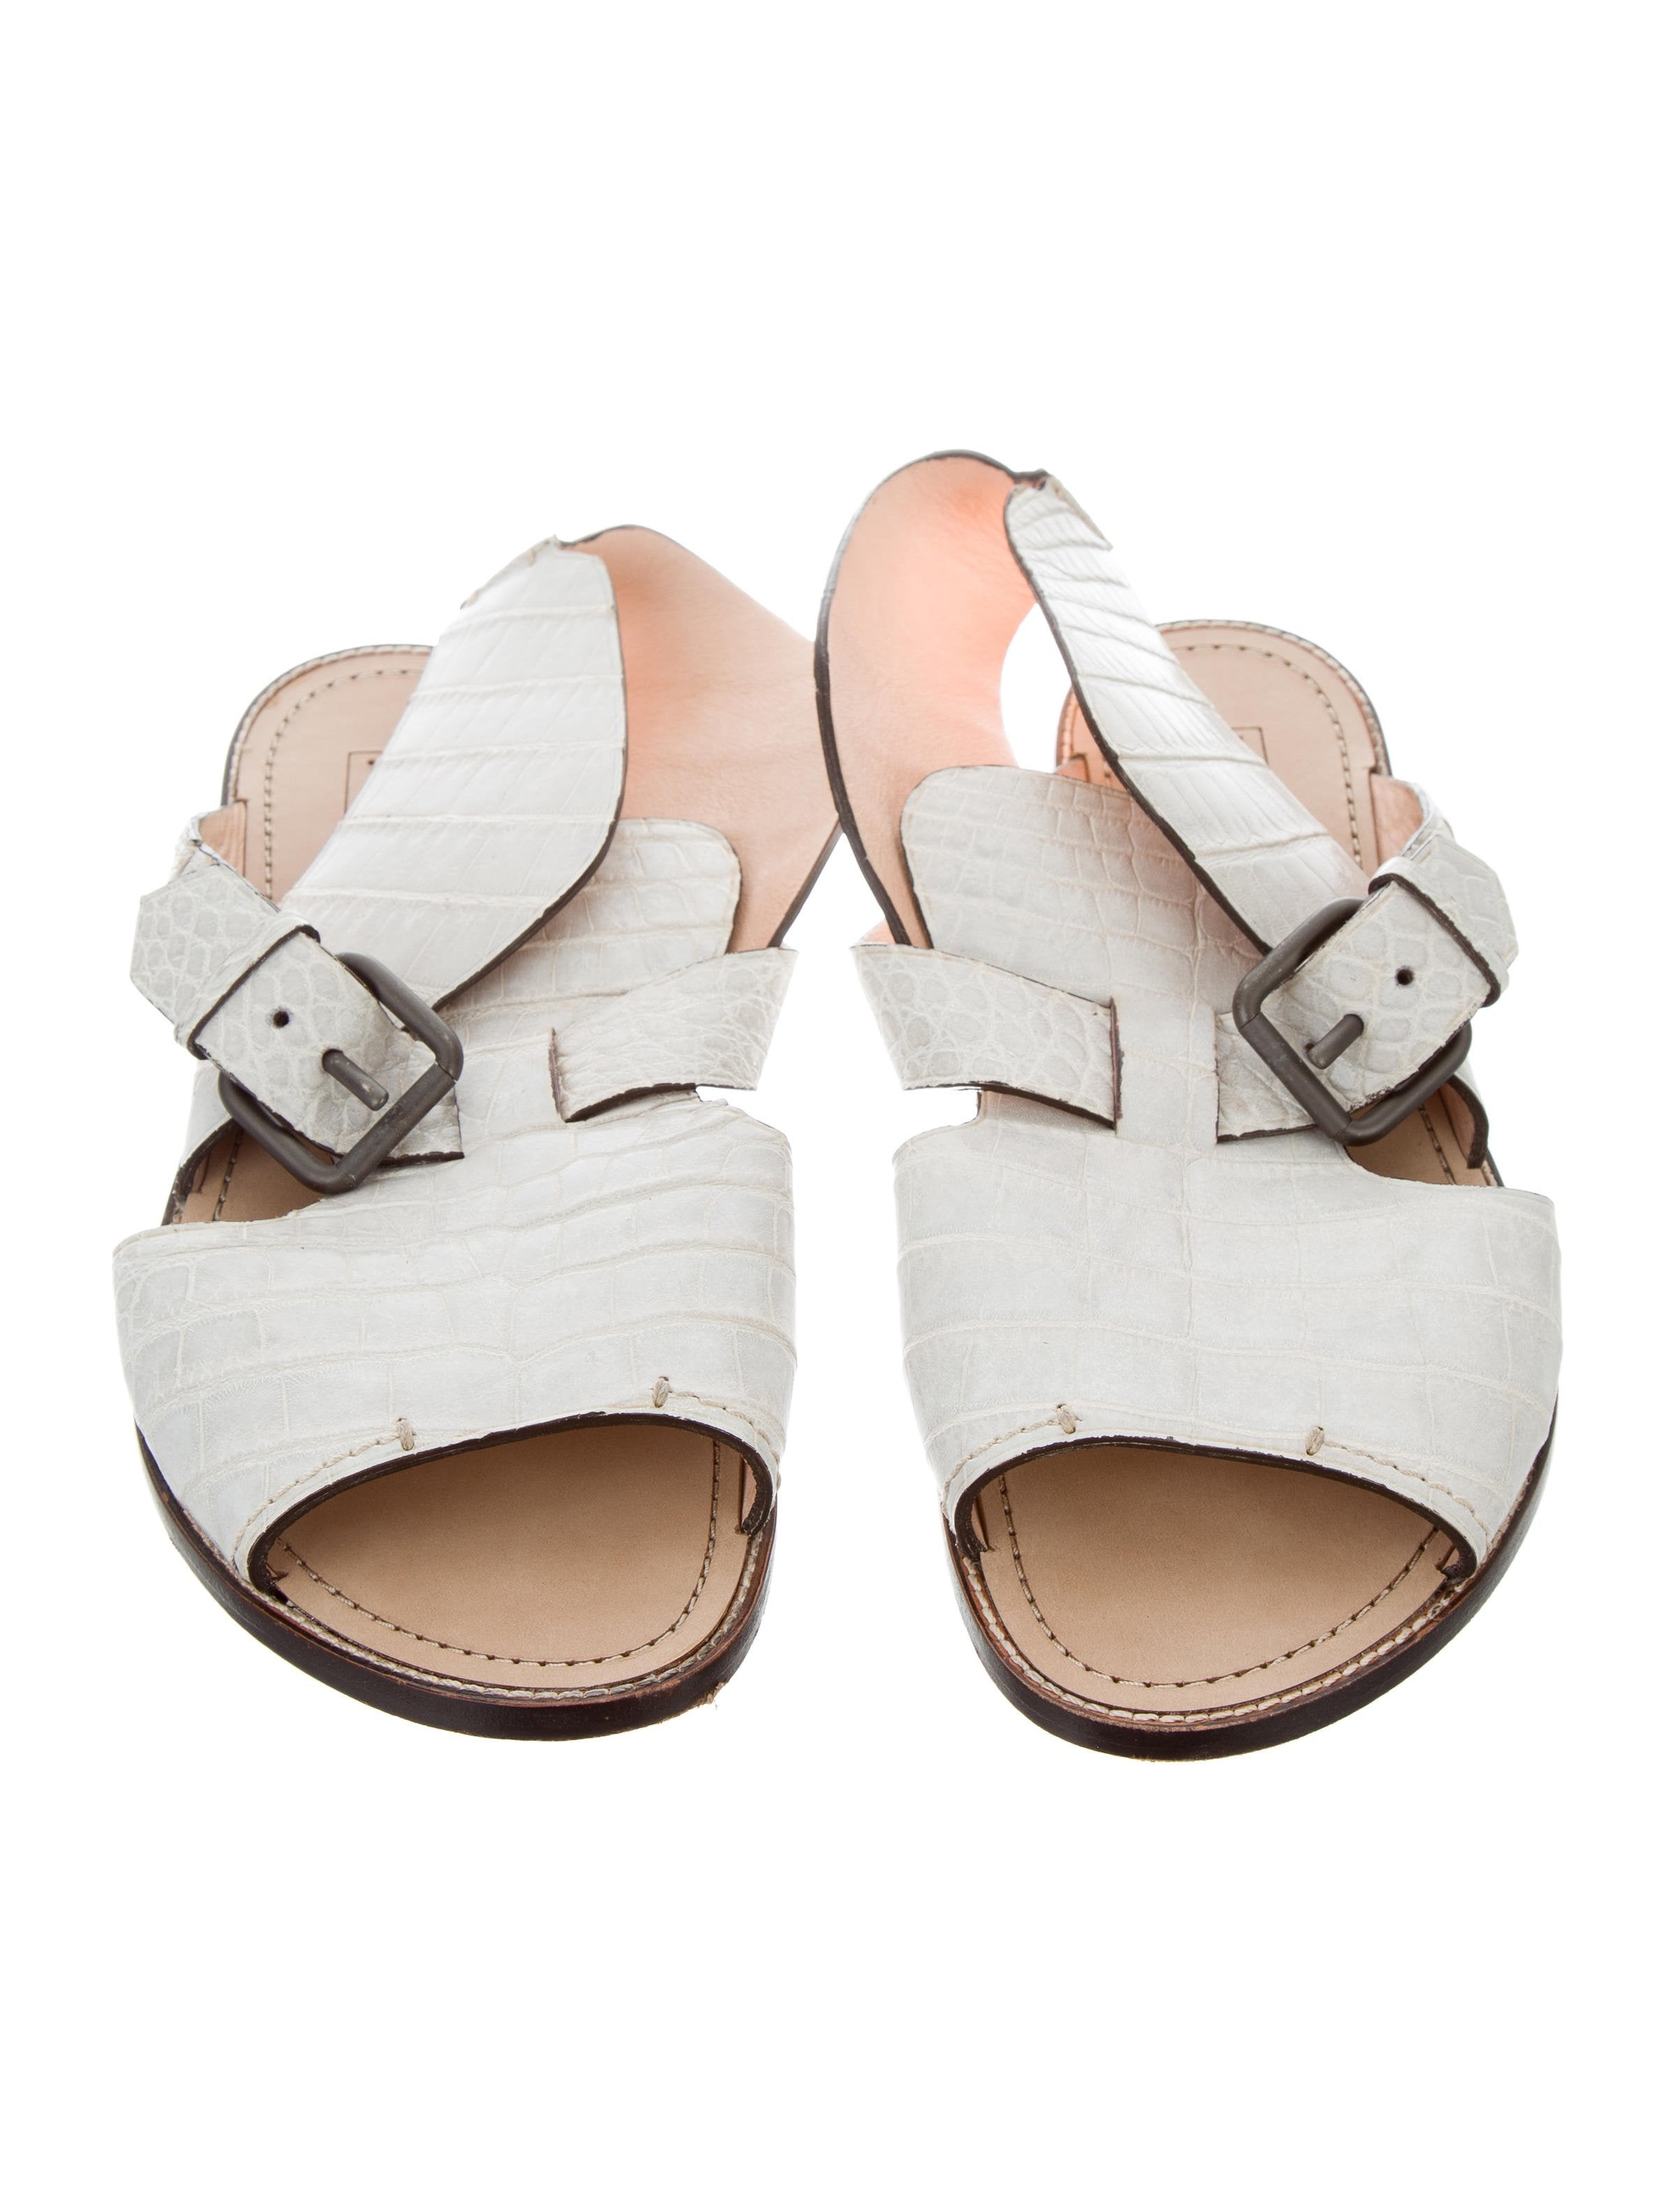 Reed Krakoff Alligator Skin Sandals outlet low price sneakernews sale online get authentic cheap online S5tErCA